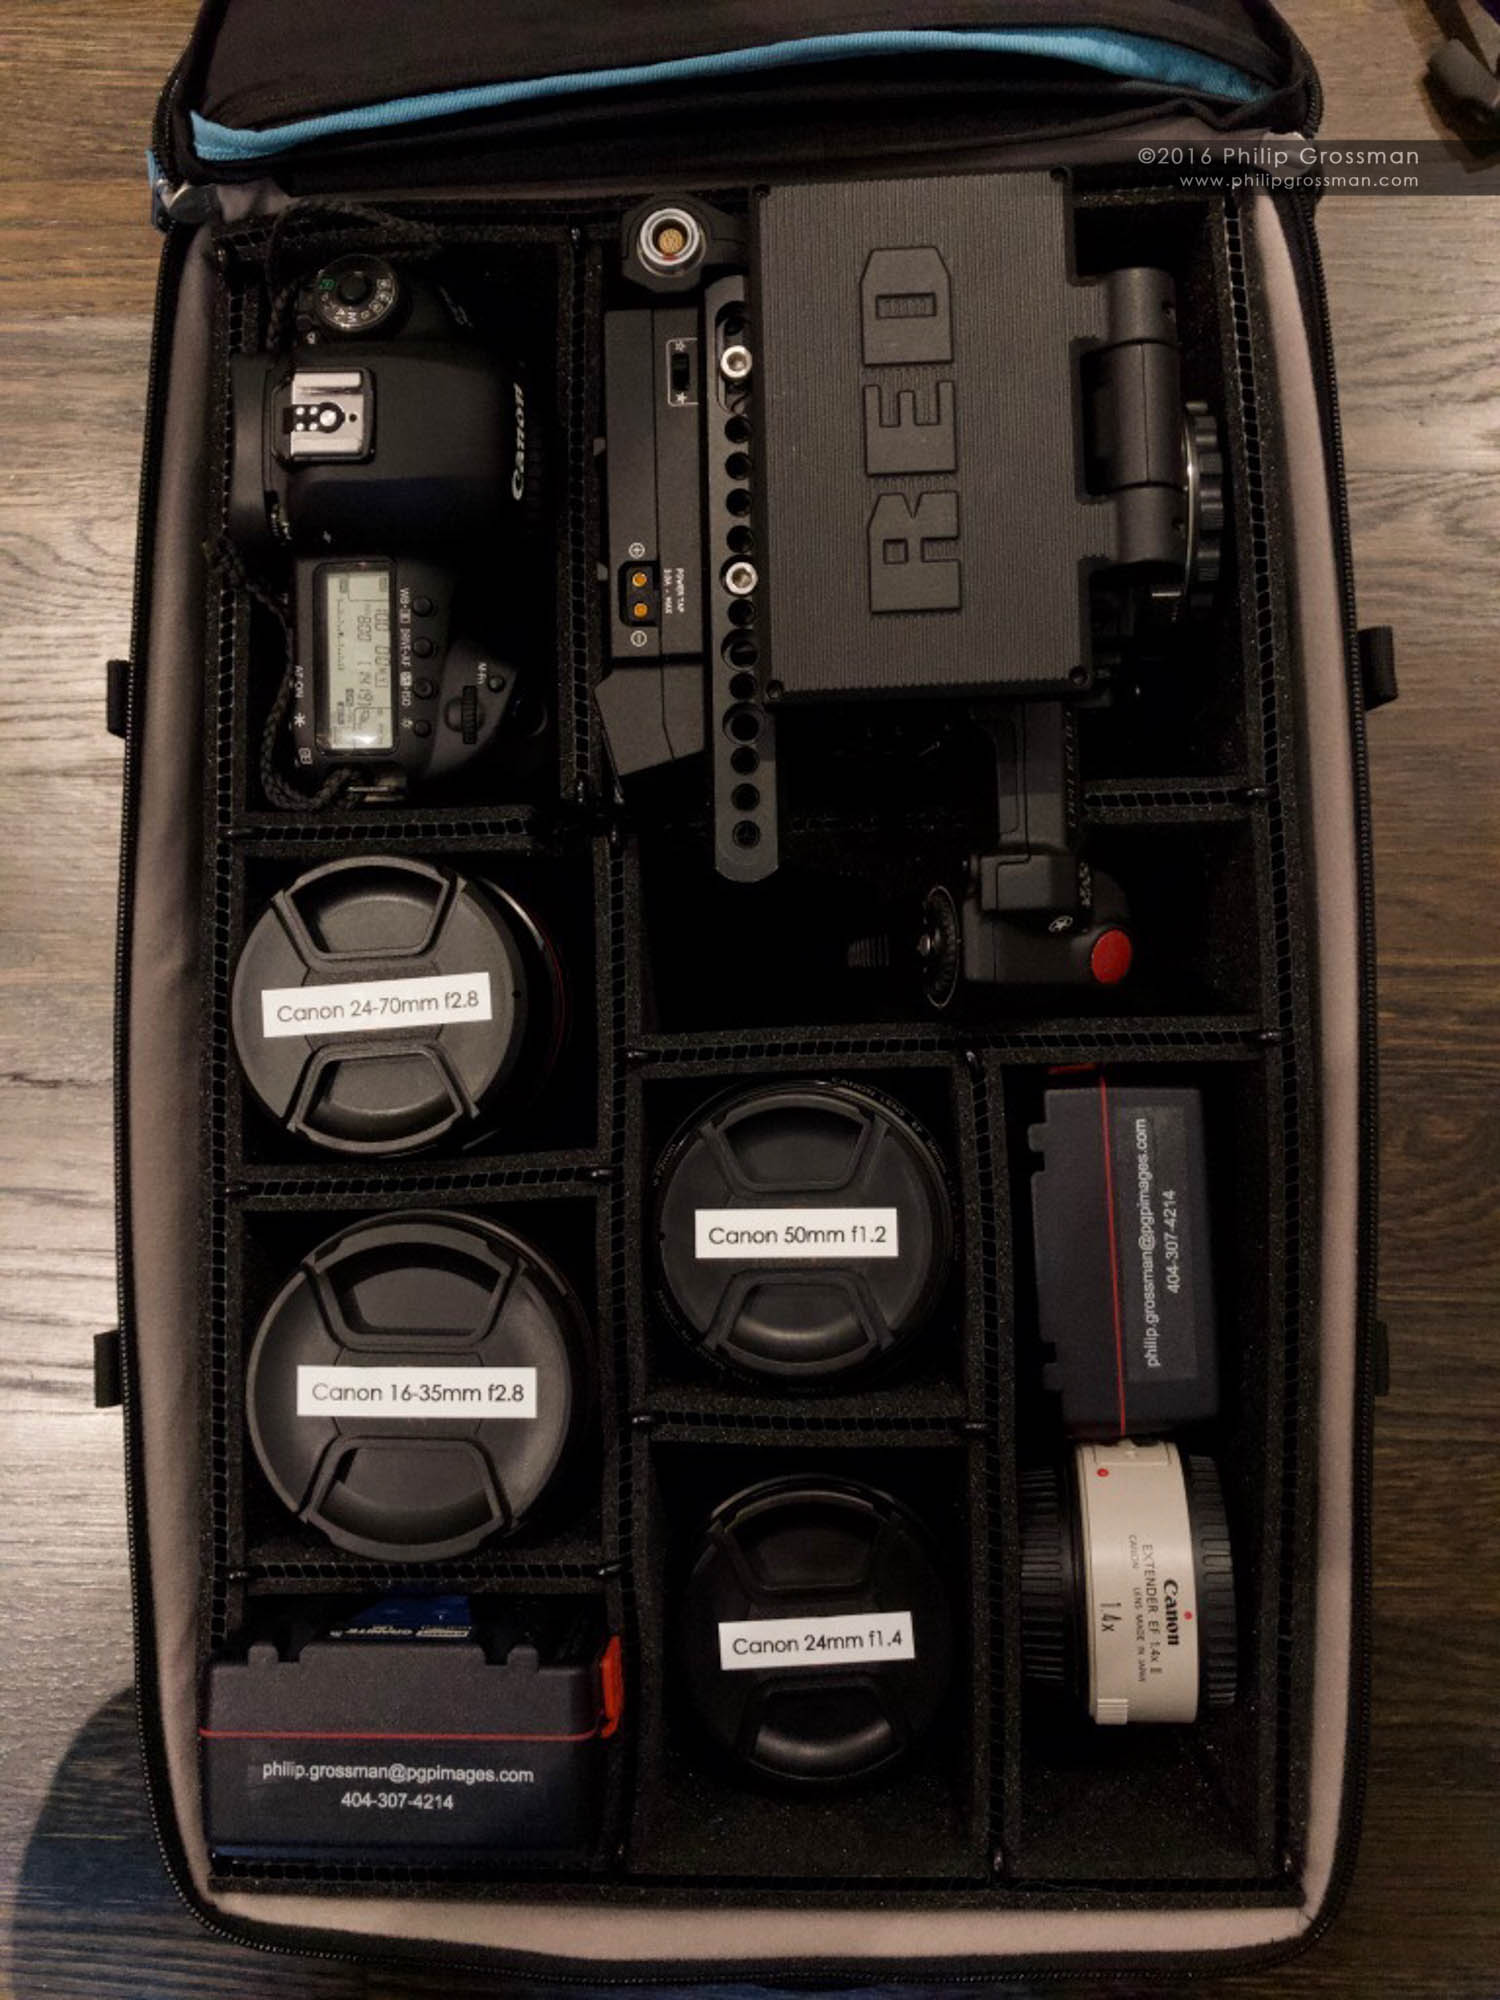 Philip's camera bag.